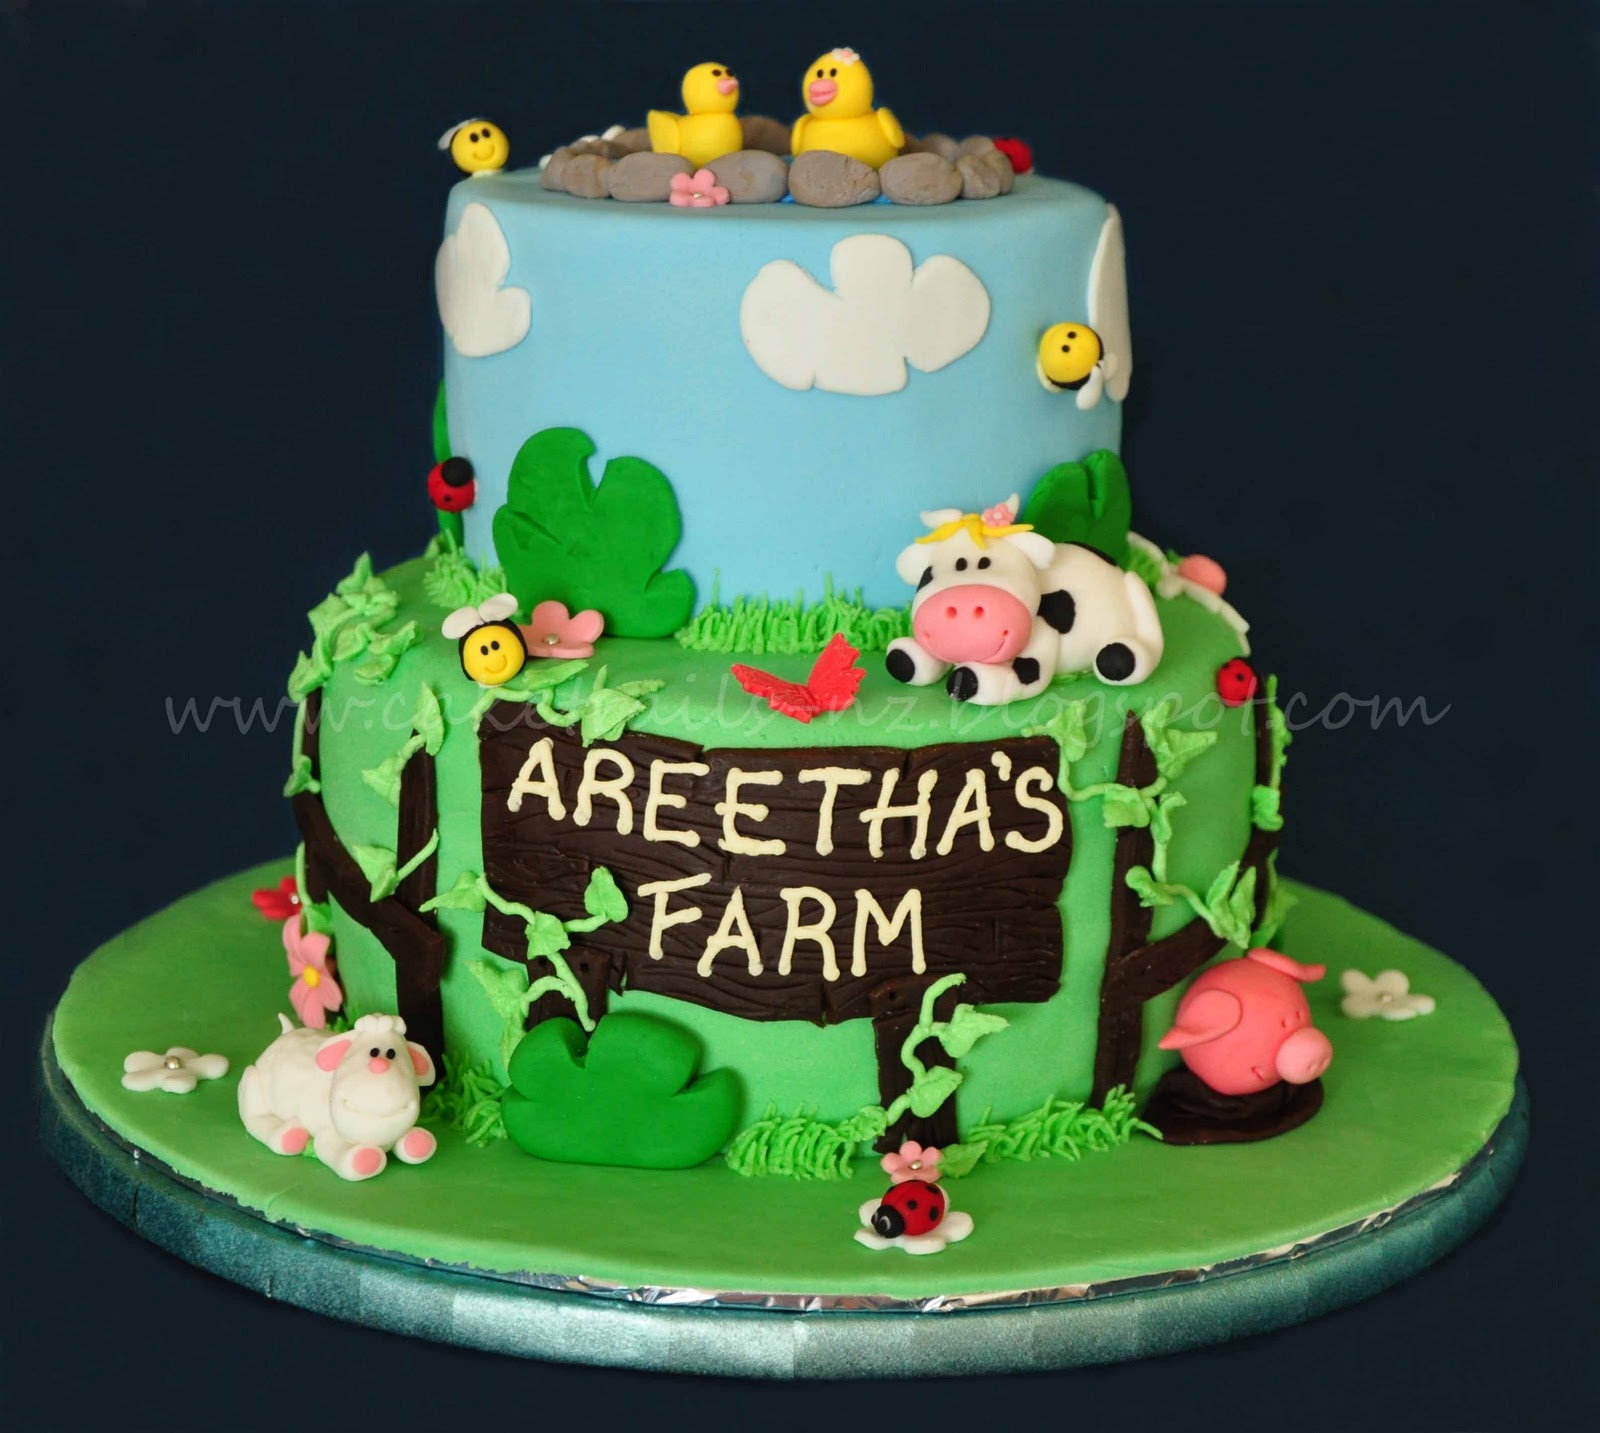 Cake Trails Farm Cake